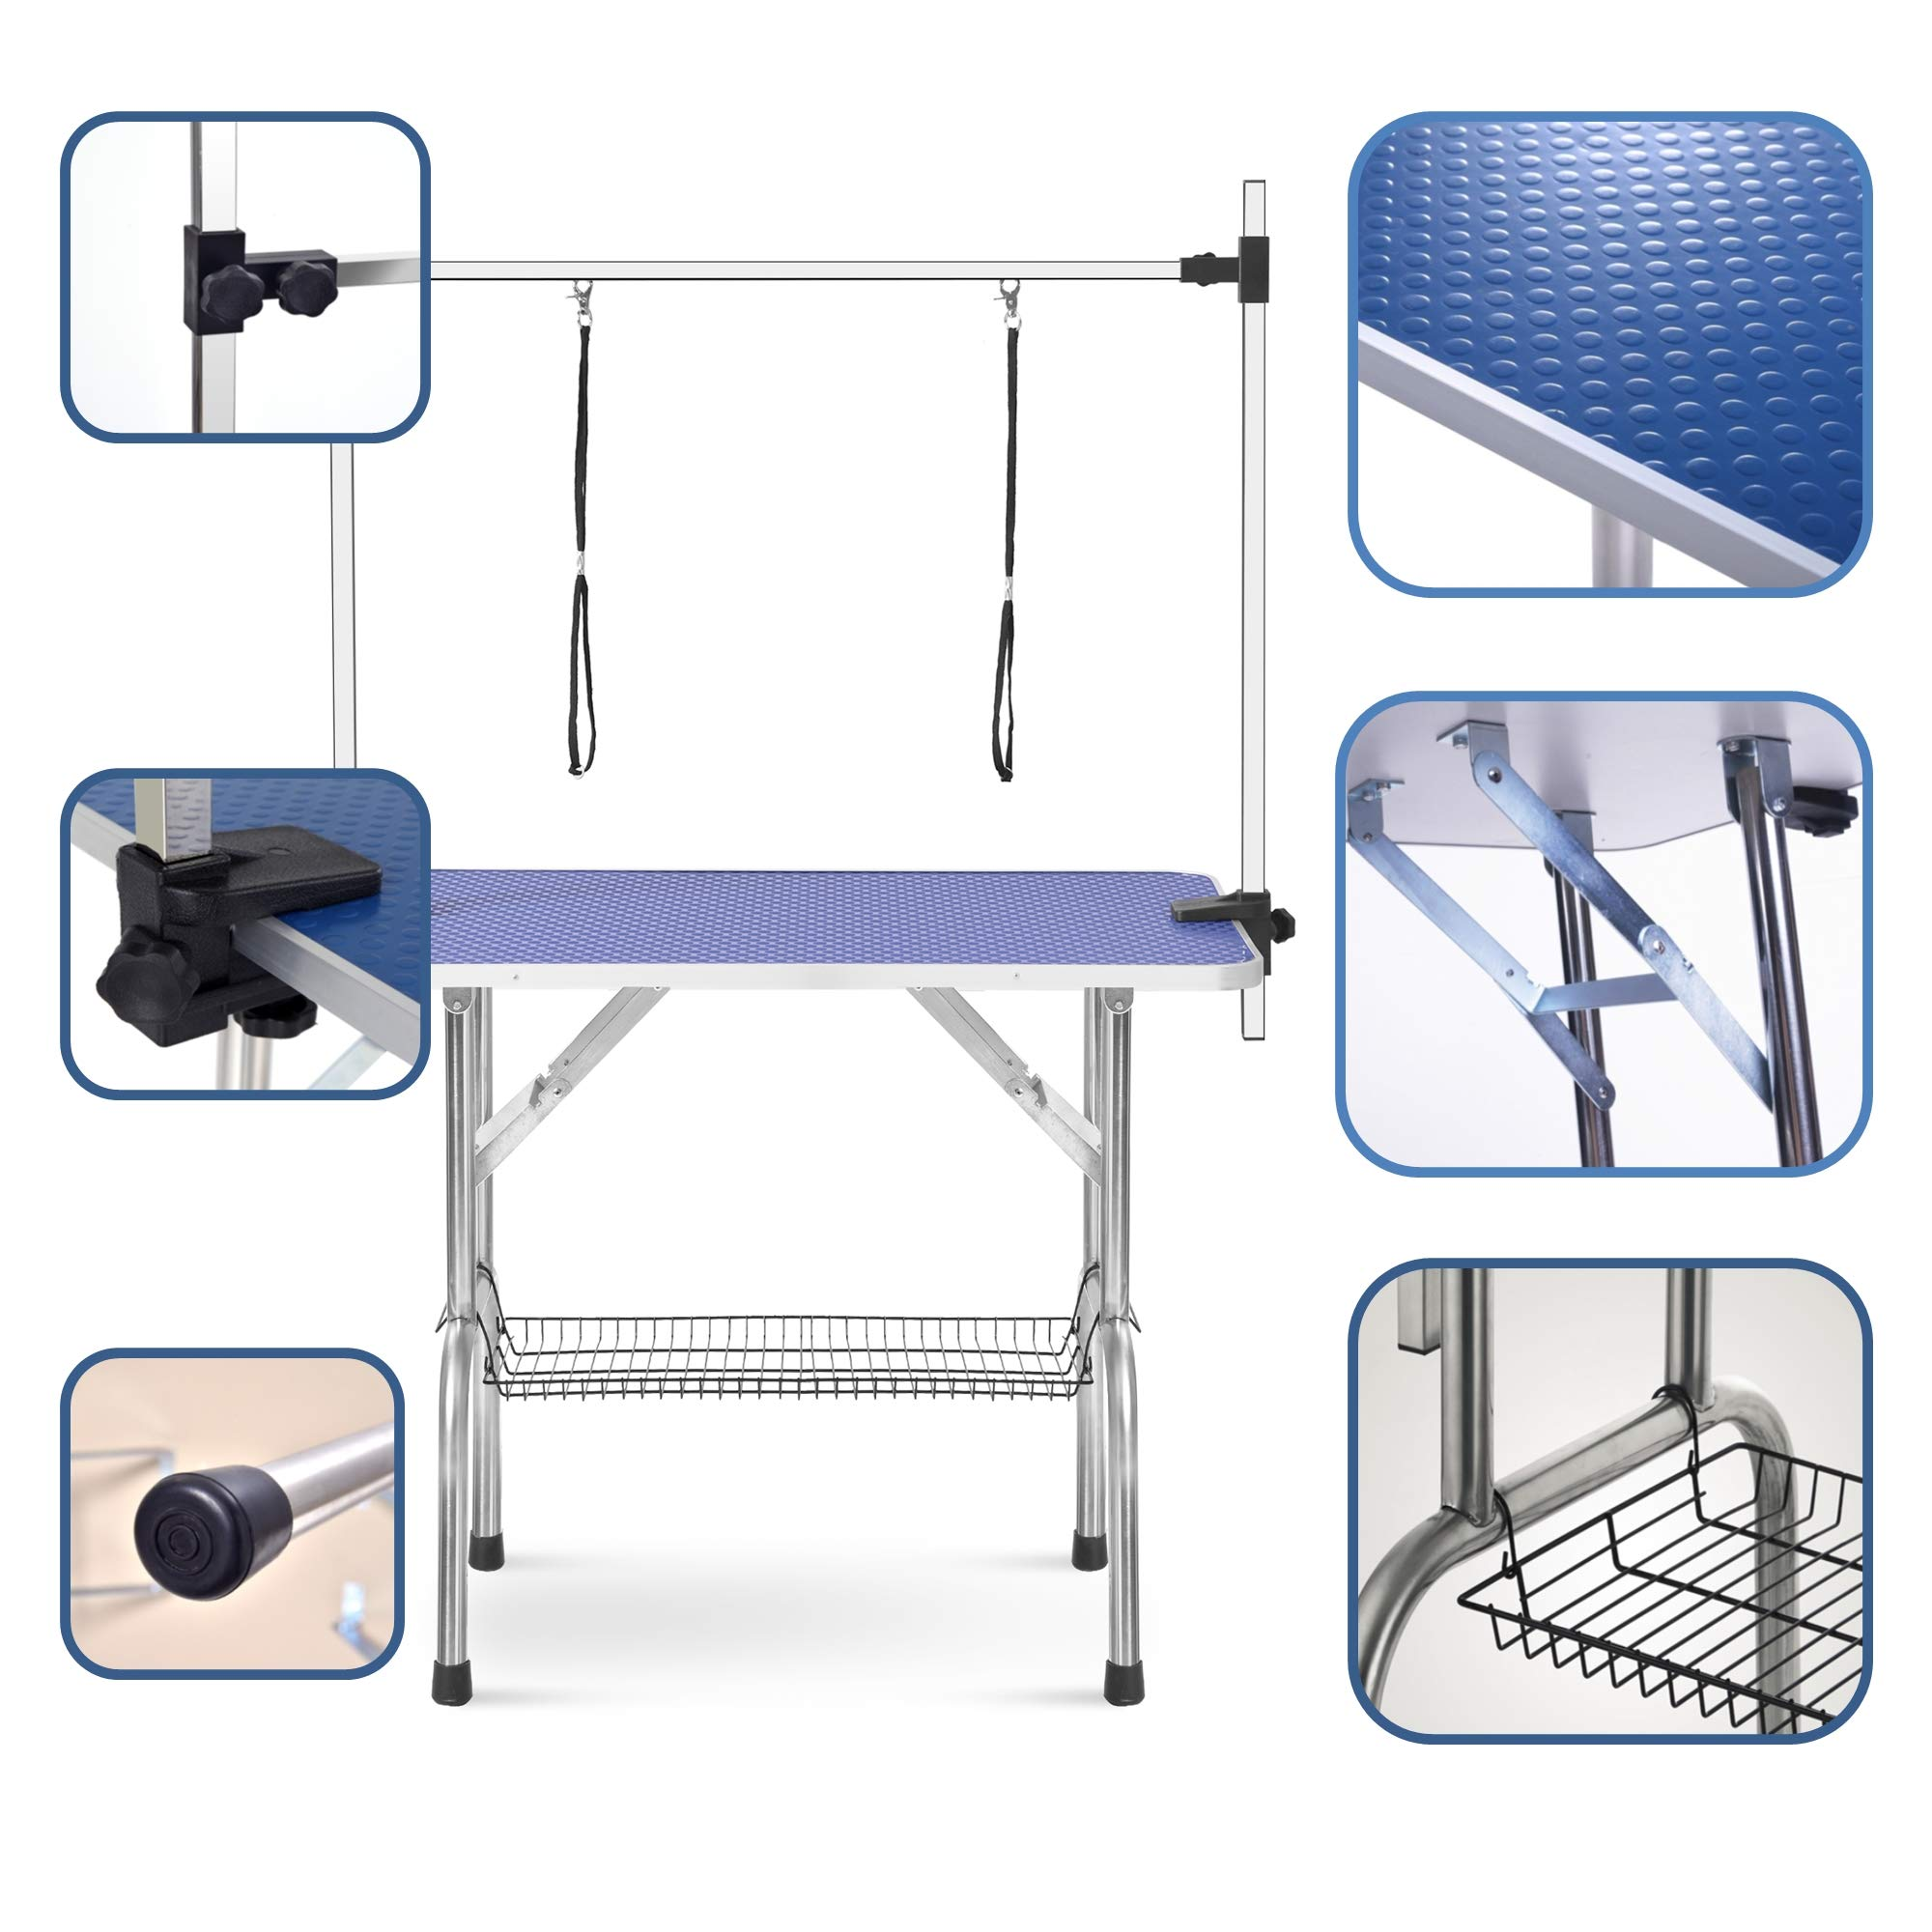 puppykitty 36'' Adjustable Folding pet Dog Grooming Table for Large Dogs Durable Stainless Steel pet Dog cat Grooming Table by puppykitty